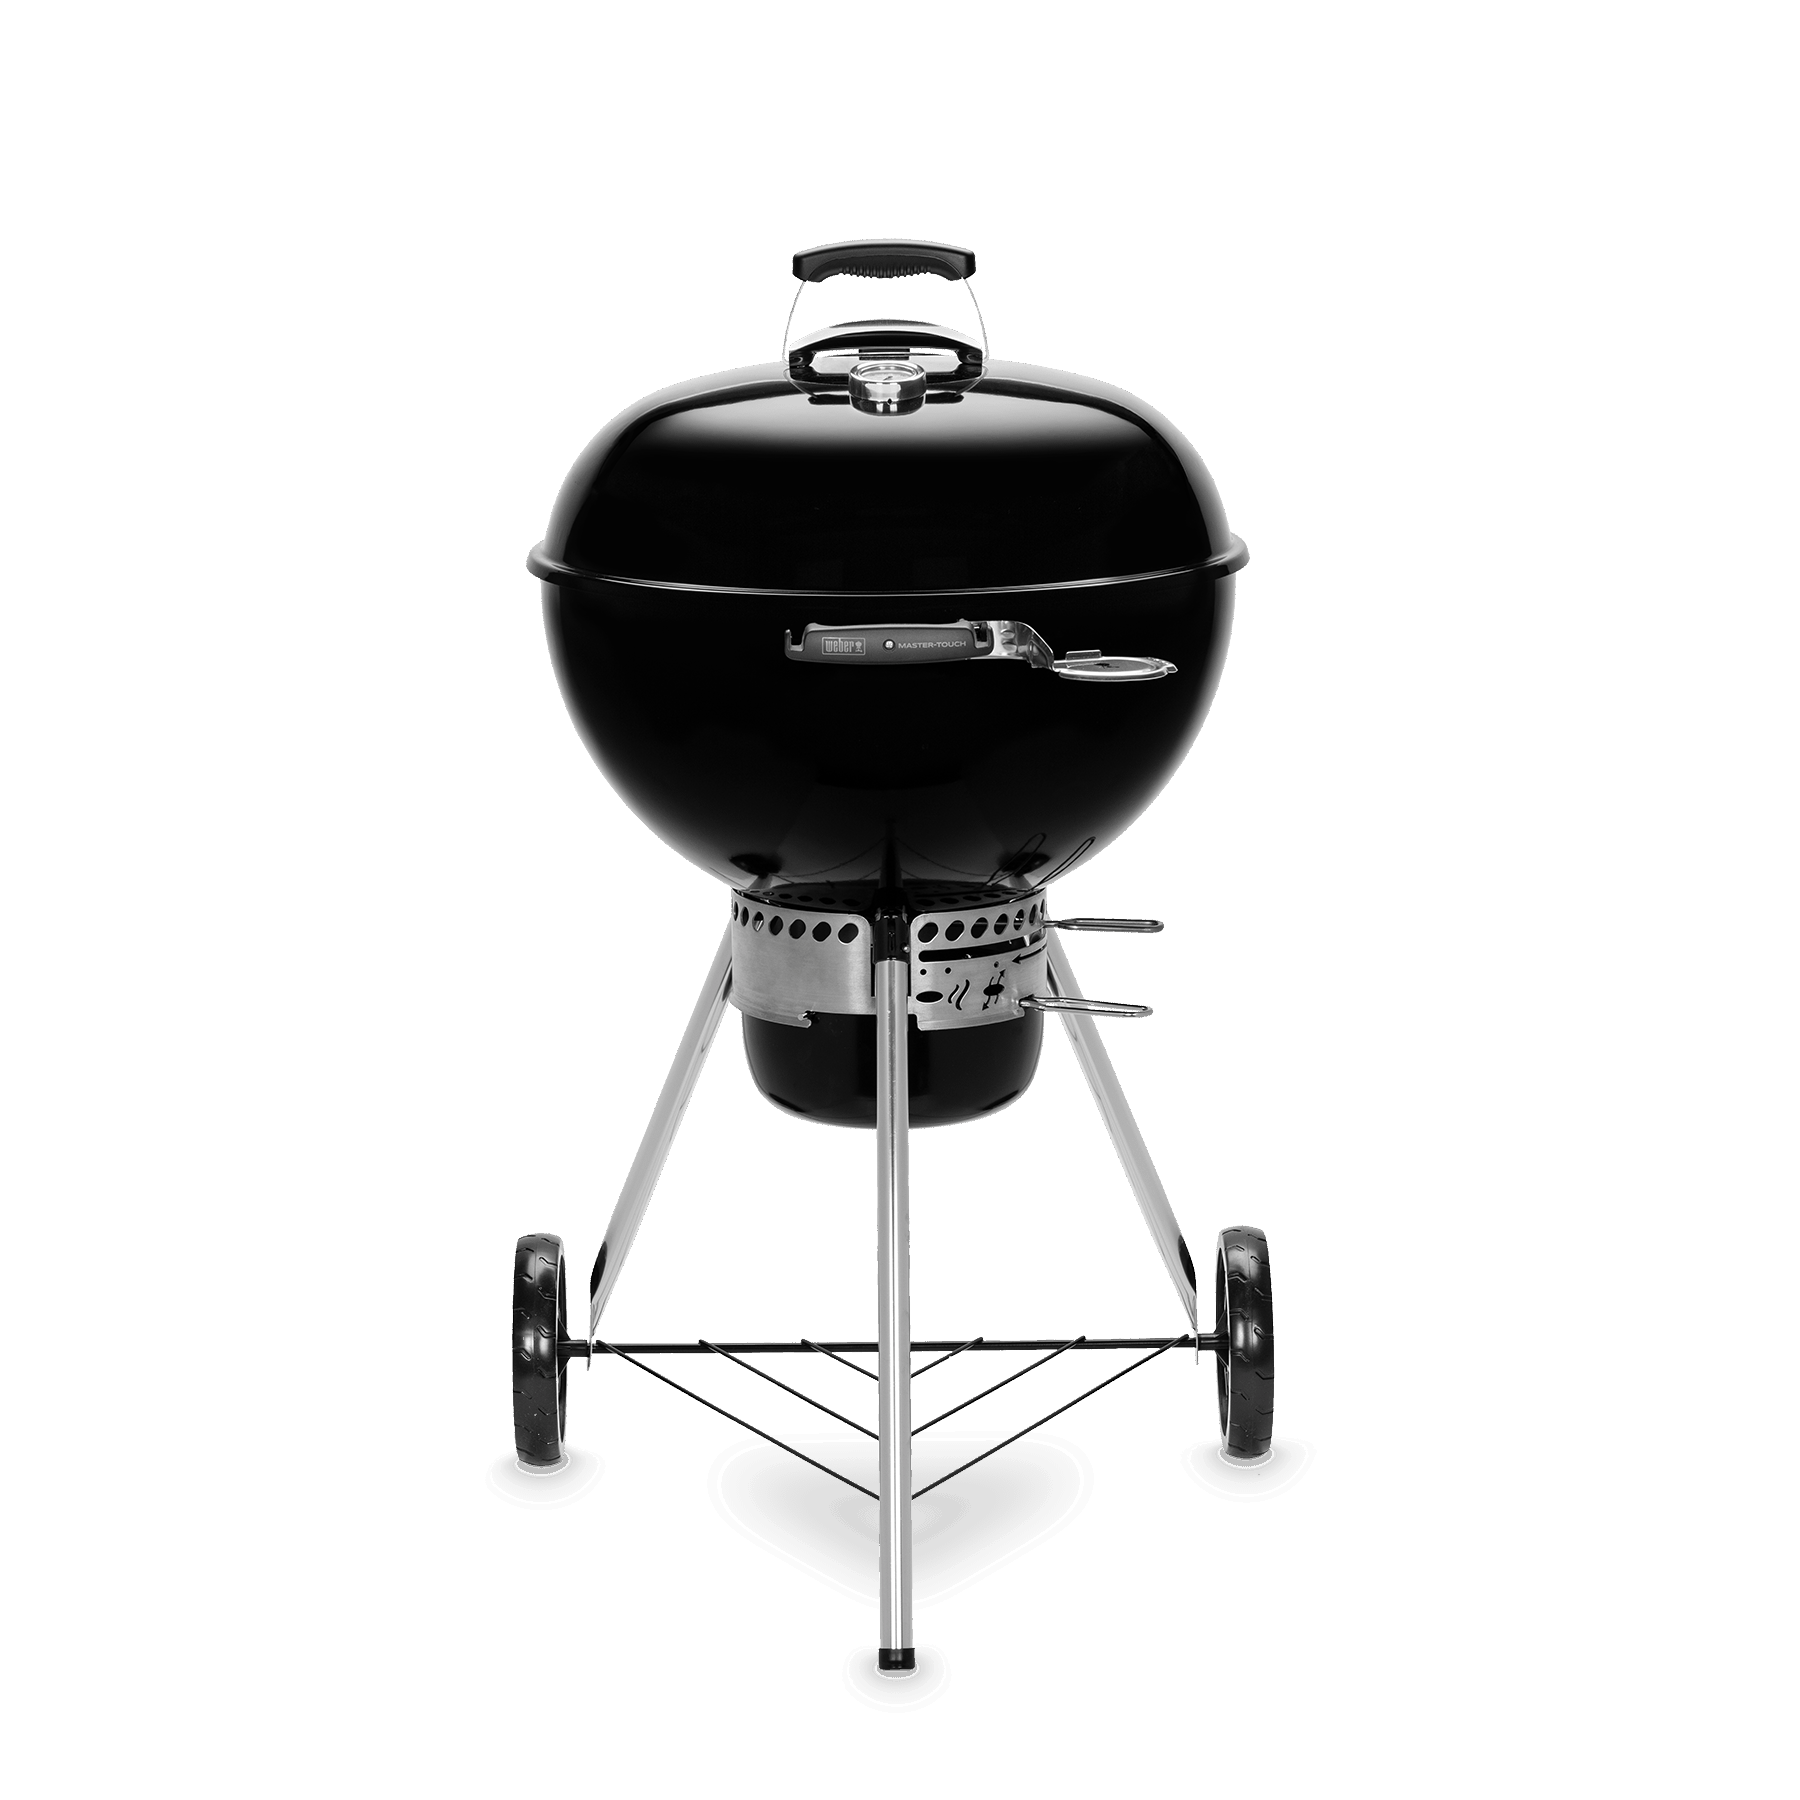 Master-Touch GBS E-5755 Kulgrill 57 cm (0077924085437)